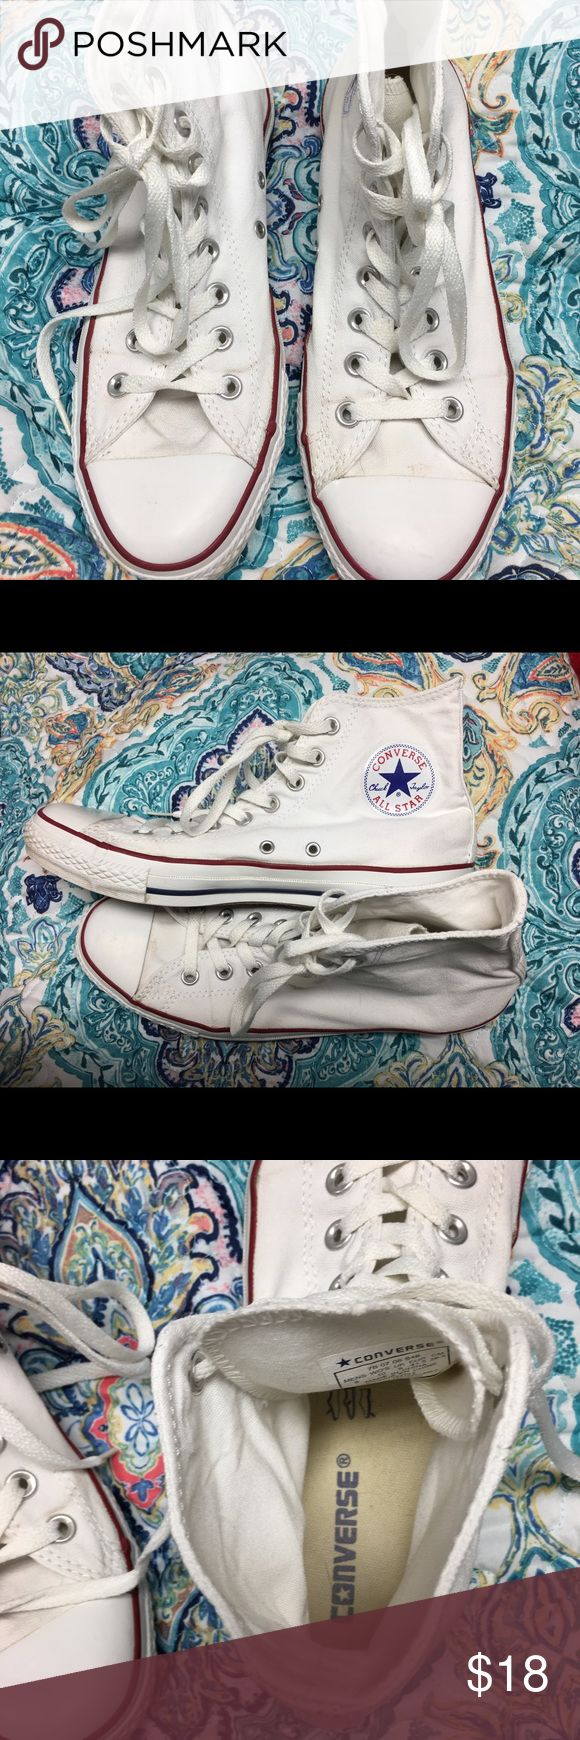 Converse All Star high tops sz men's 8 woman's 10 White Converse All Star high tops in men's size 8 or ladies 10. Gently used condition. Just a couple of spots on top. Smoke free home. Thanks for the interest and God Bless Converse Shoes Athletic Shoes